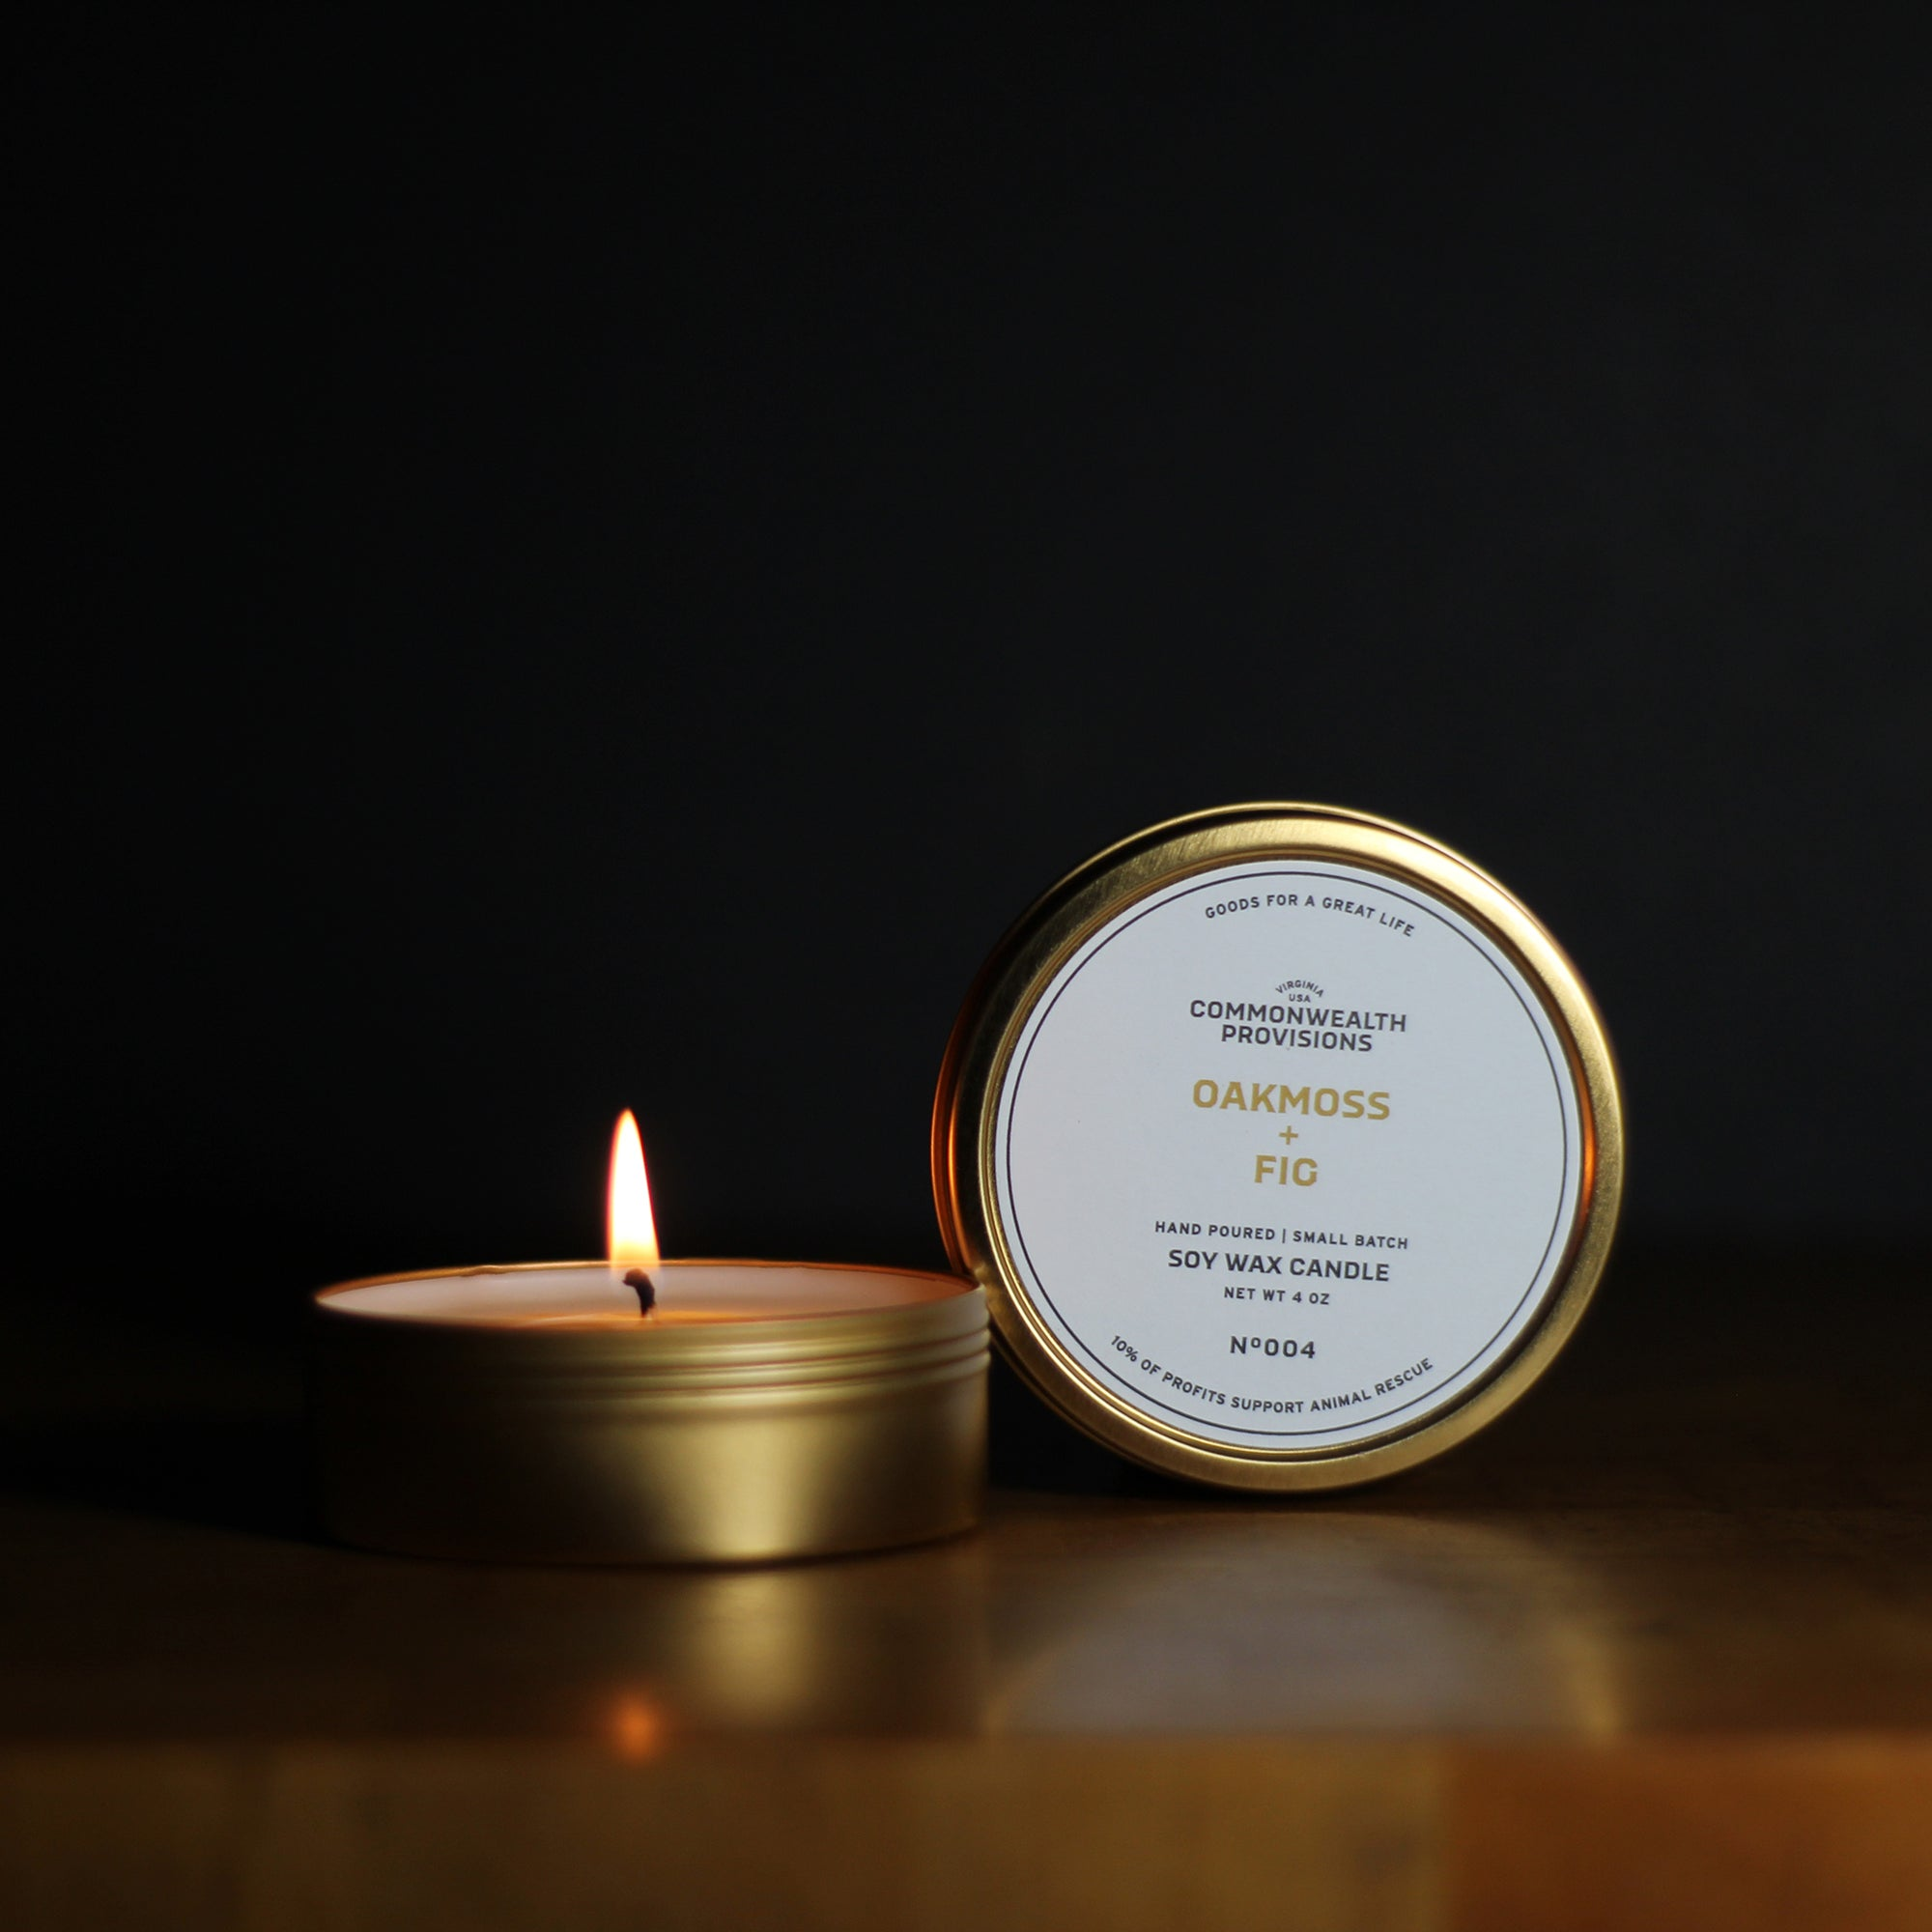 Commonwealth Provisions Oakmoss + Fig Travel Candle